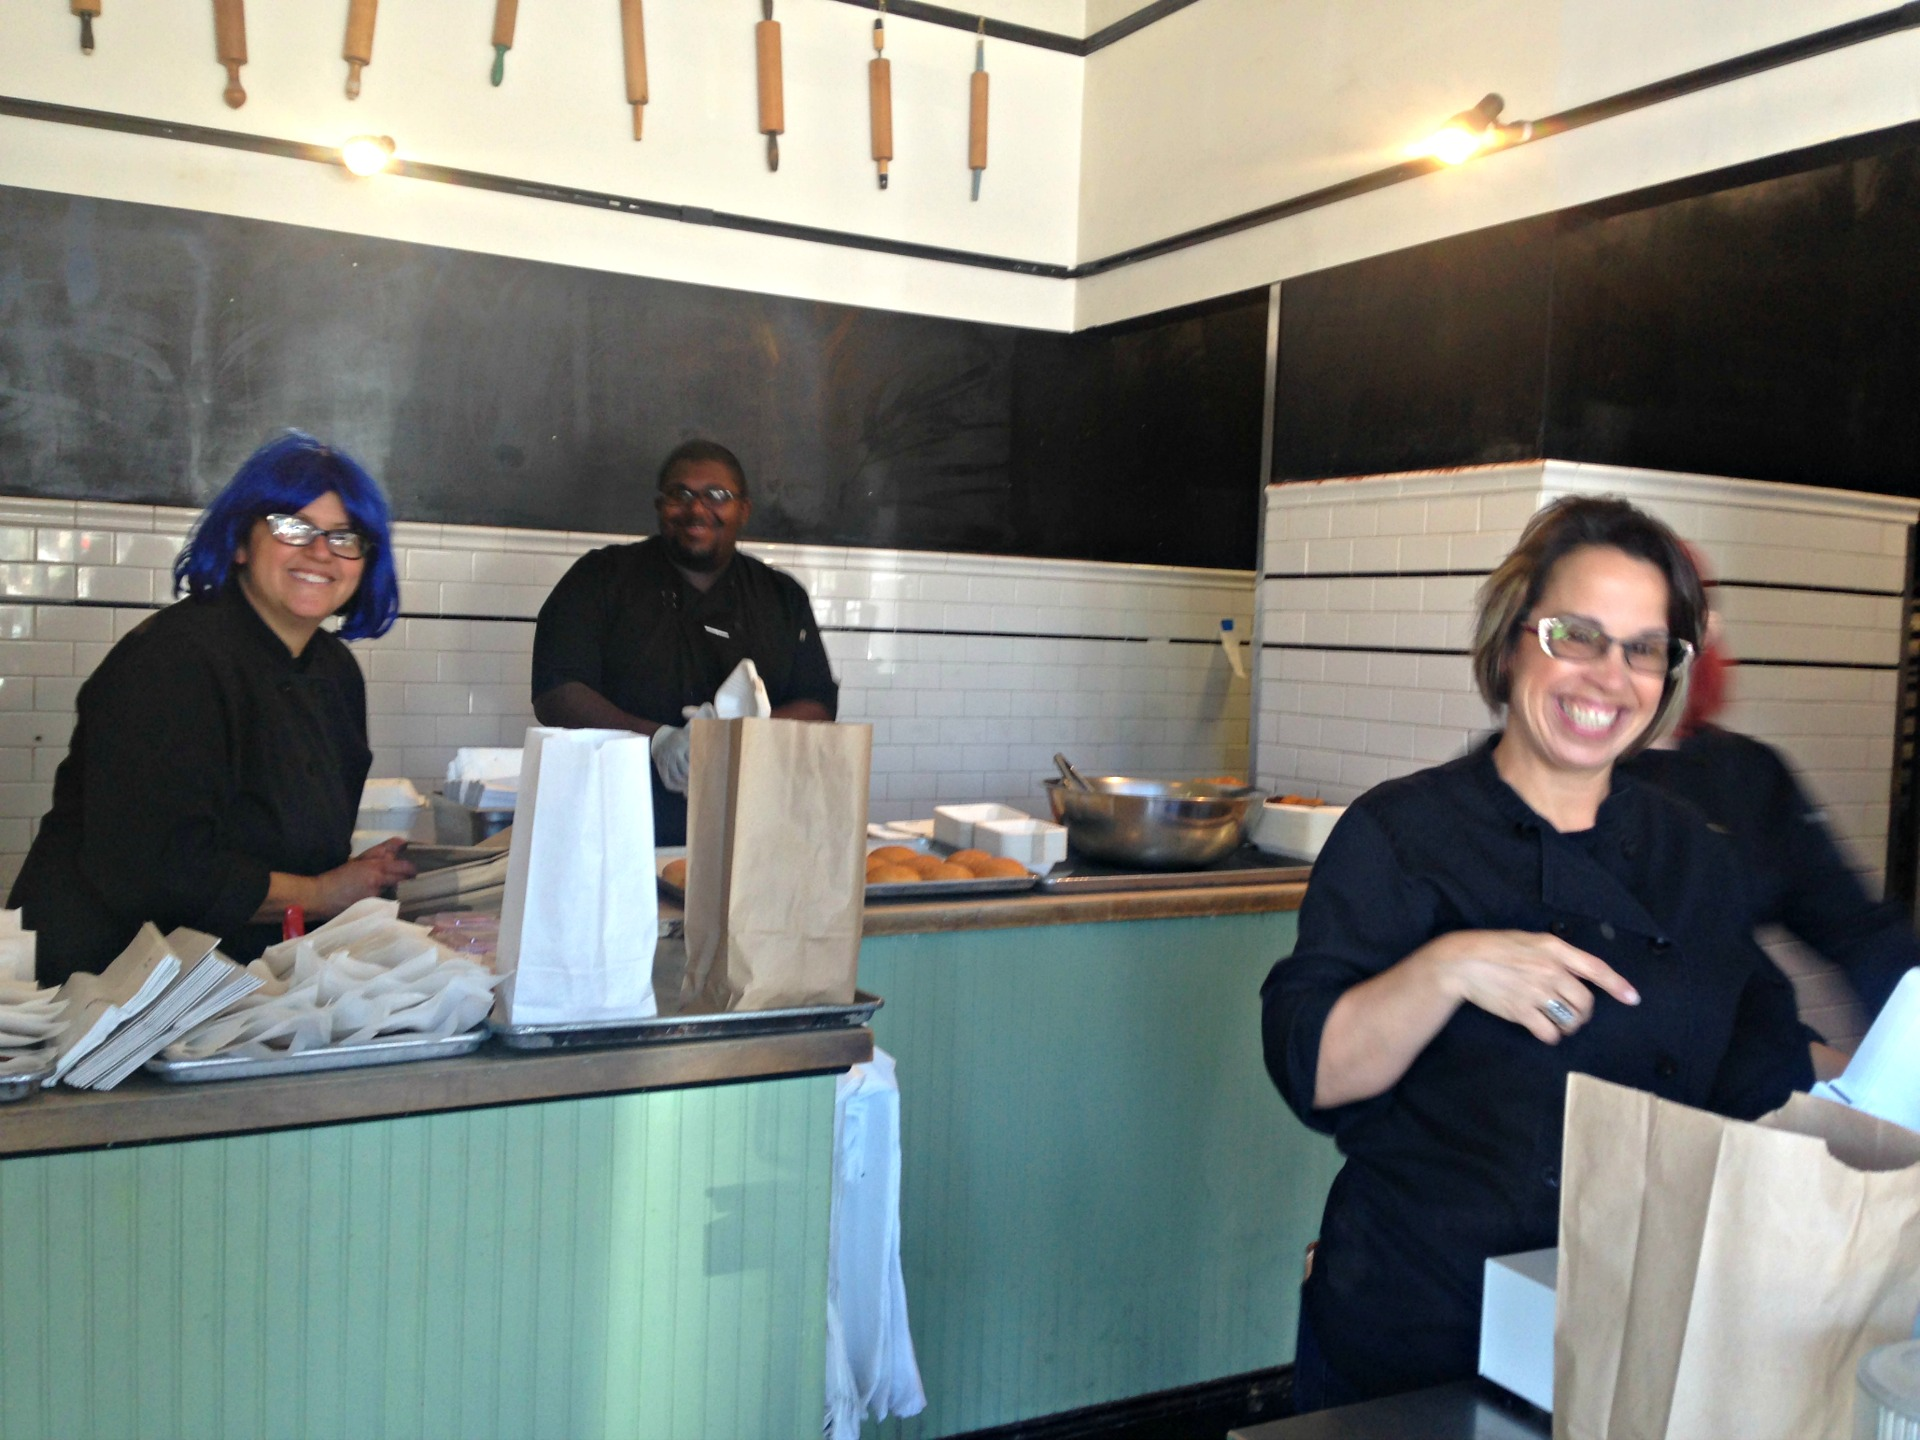 Bakesale Betty's owner blue-wigged Alison Barakat and cheerful workers.